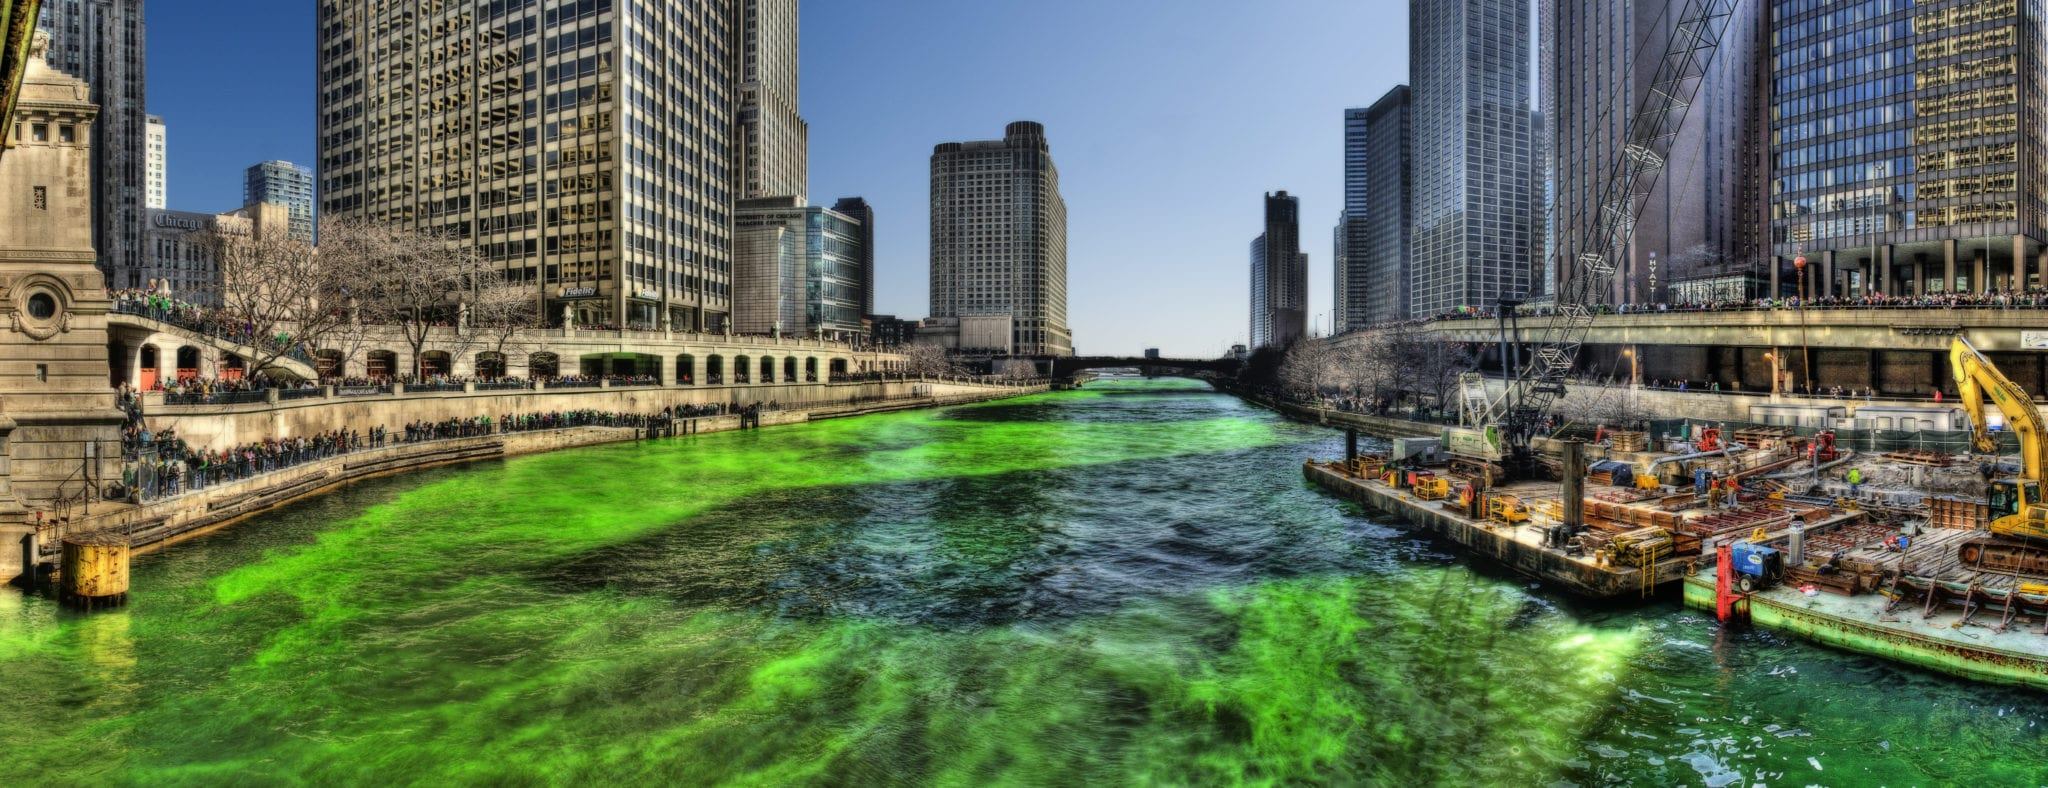 Illinois becomes 11th state to legalize cannabis, grants 11,000 pardons - Chicago river green for St. Patrick's Day